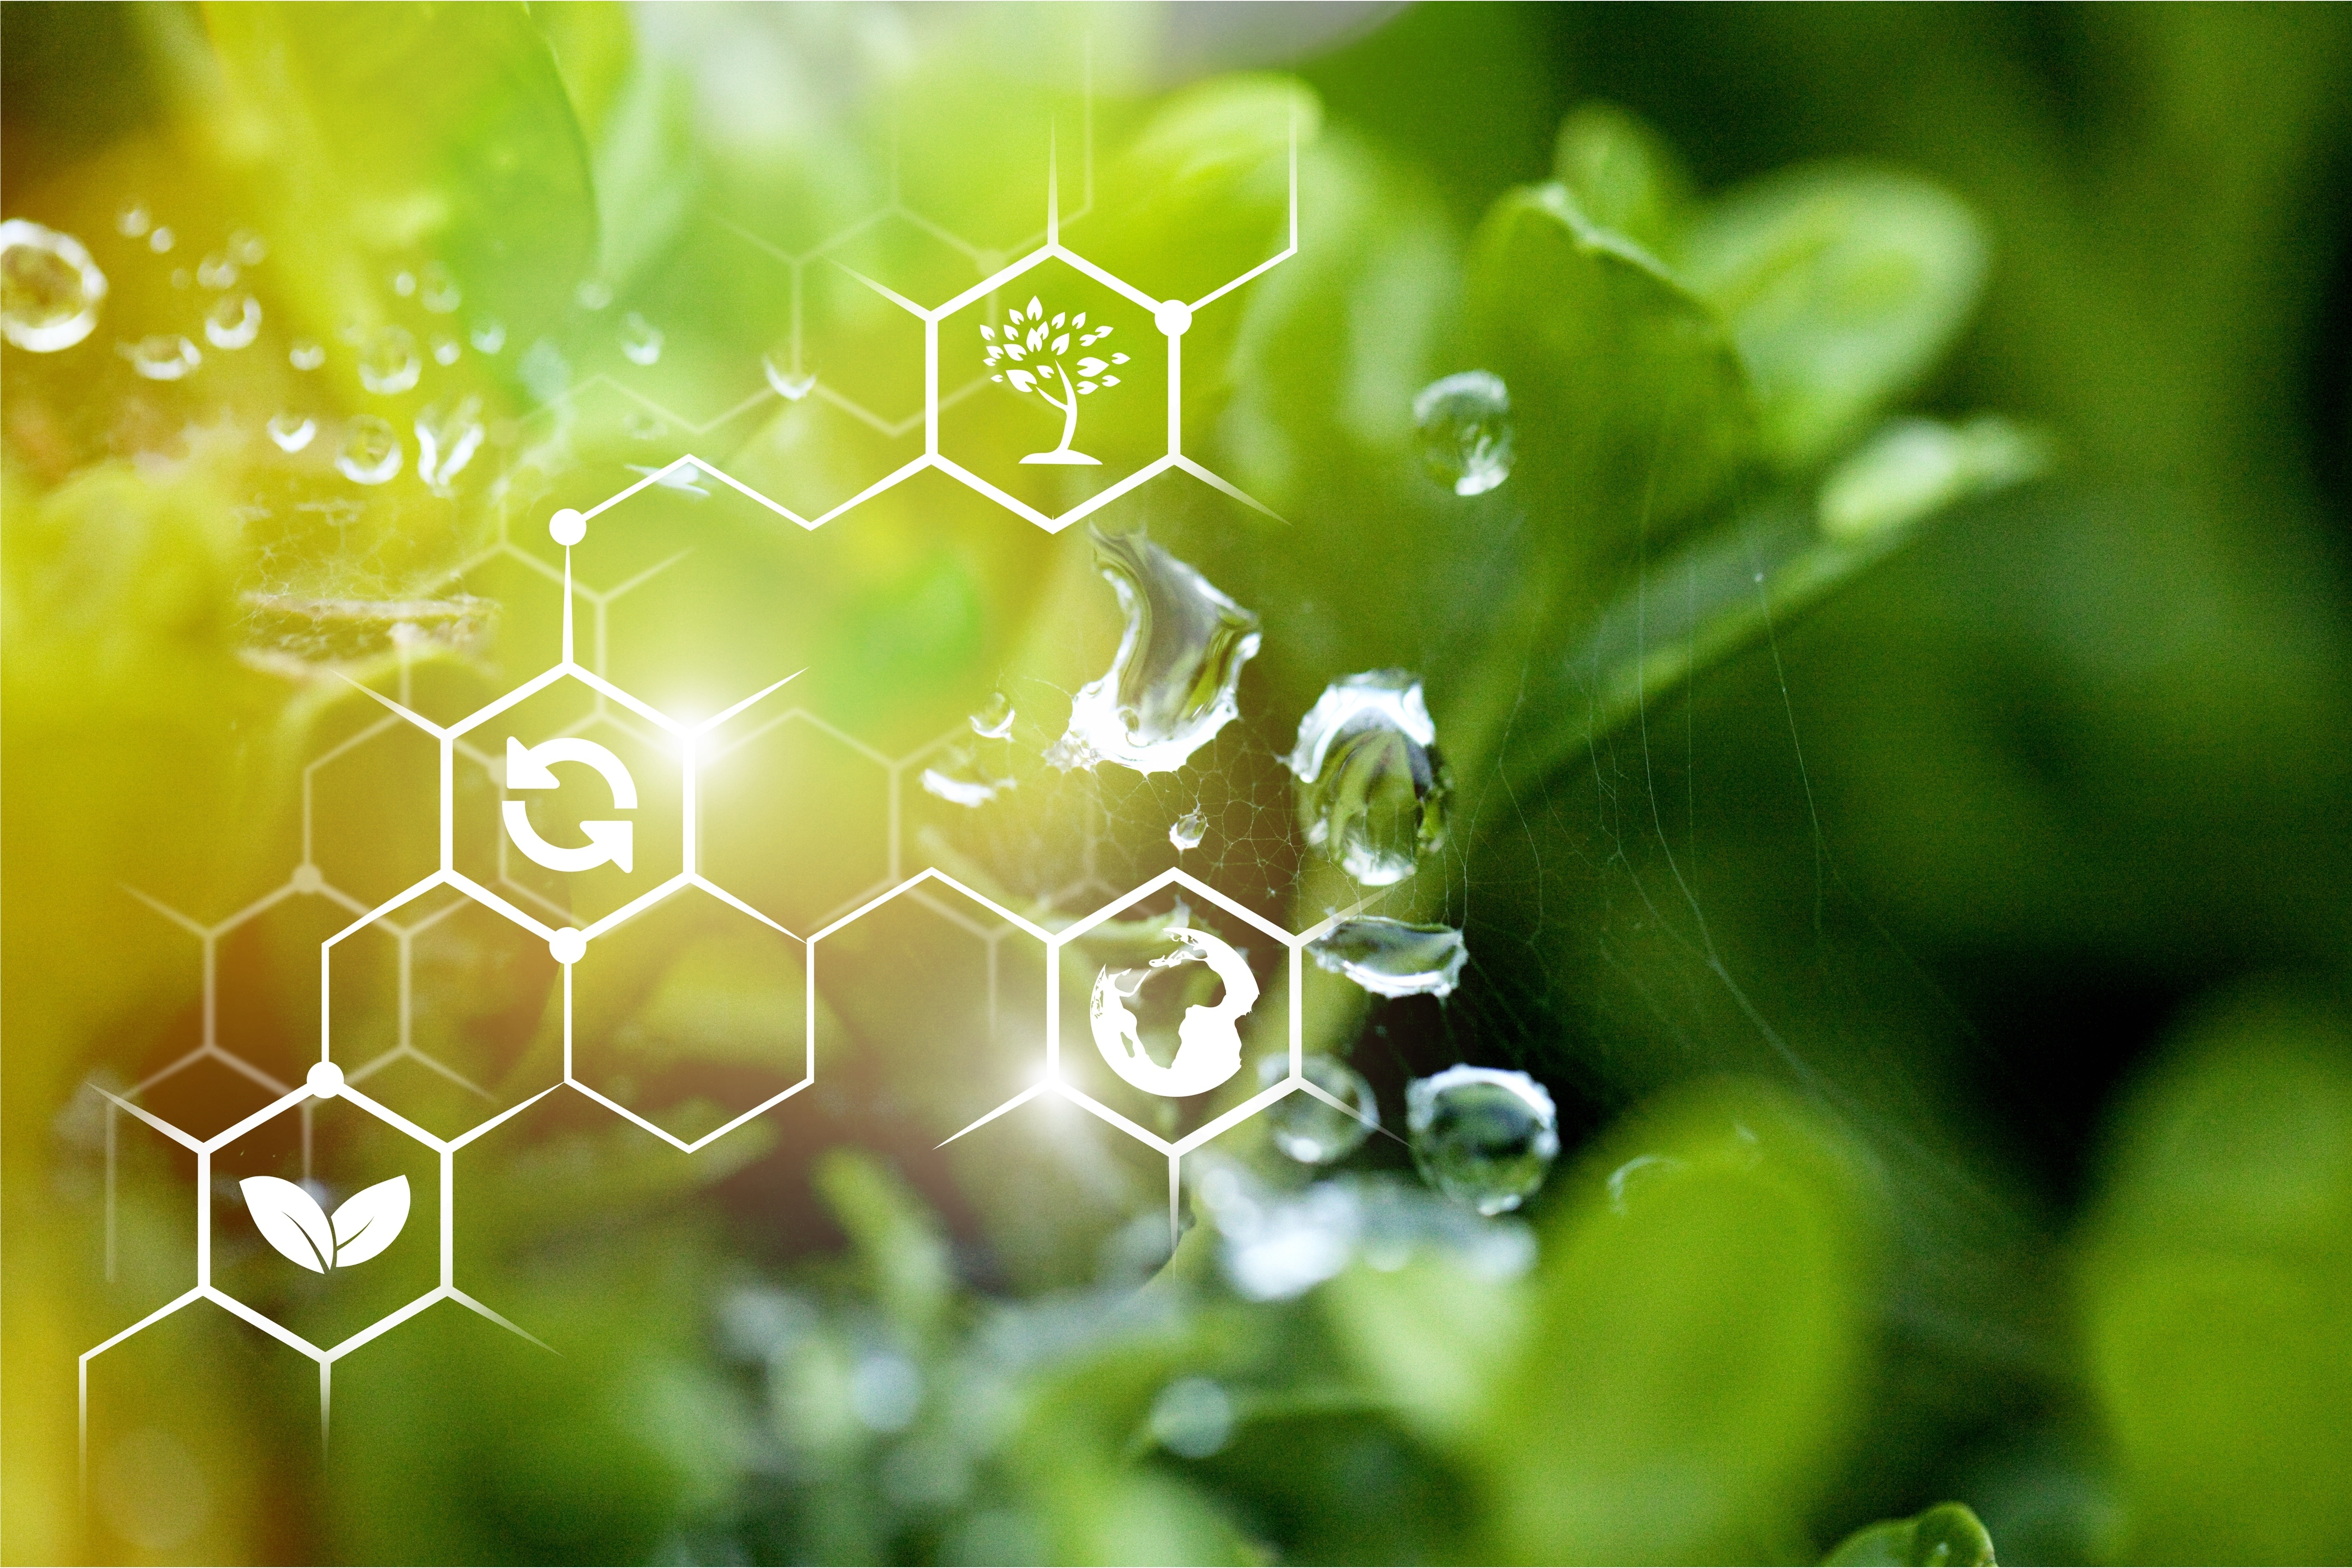 biological knowledge and advanced technology as pillars of a future-oriented, sustainable bioeconomy